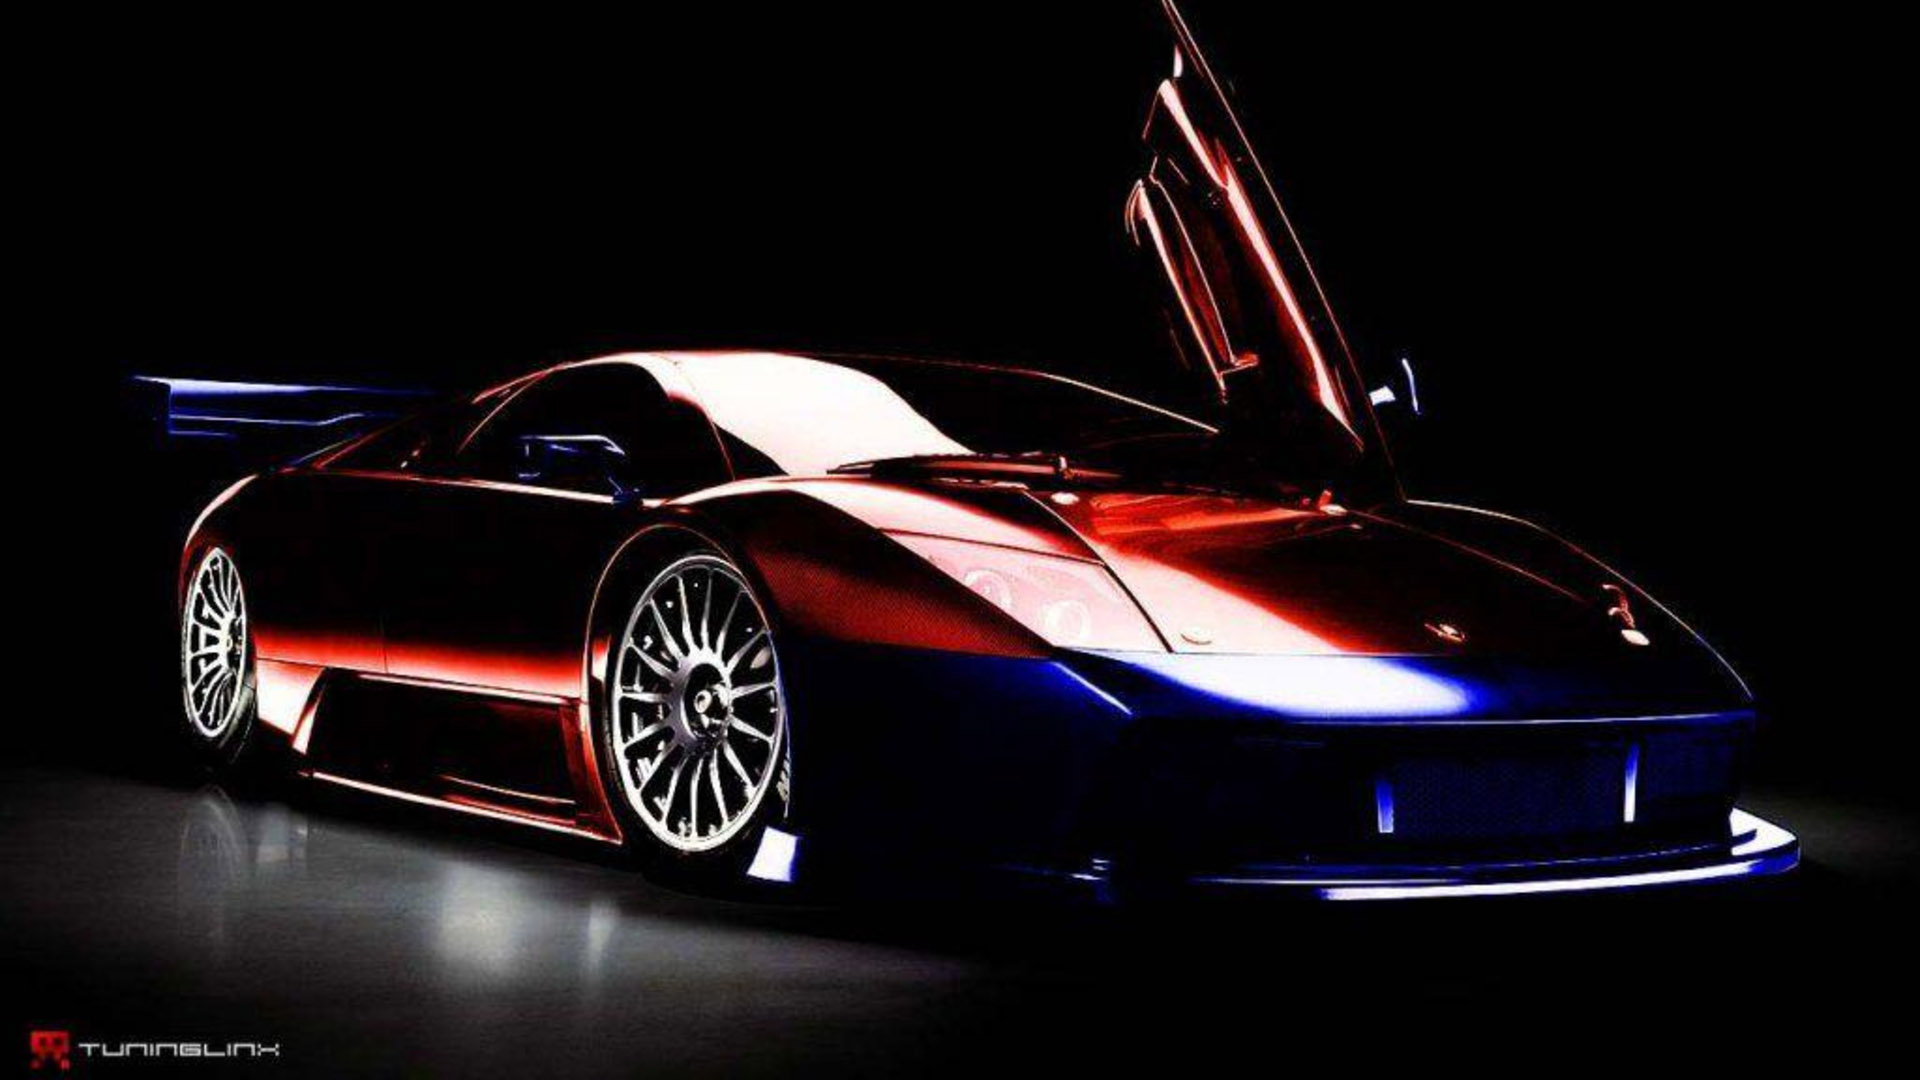 World Best Super Car Lamborghini Wallpaper   SA Wallpapers 1920x1080